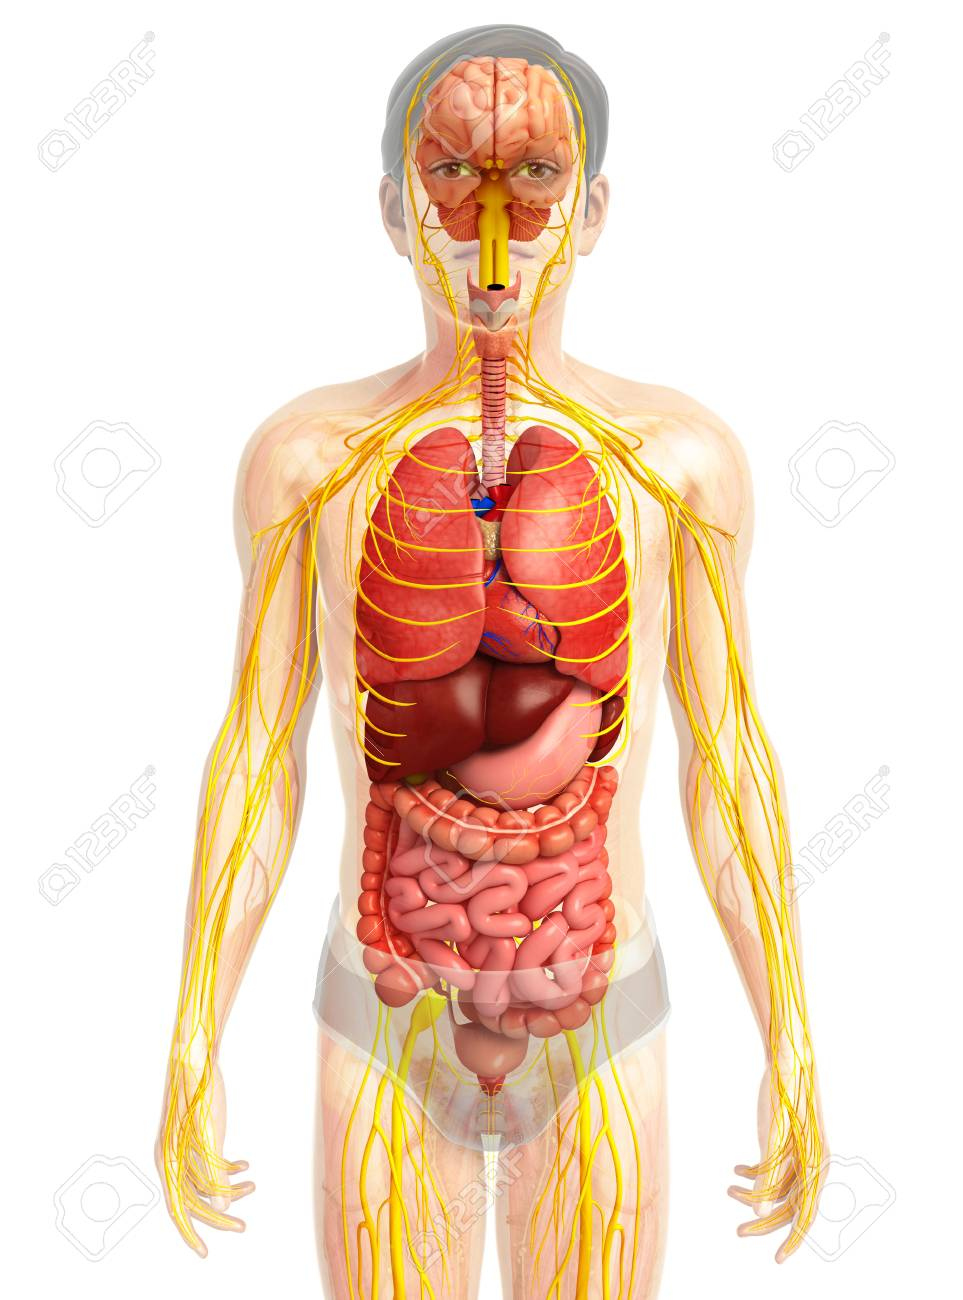 hight resolution of illustration of male body with nervous and digestive system artwork stock illustration 44278606